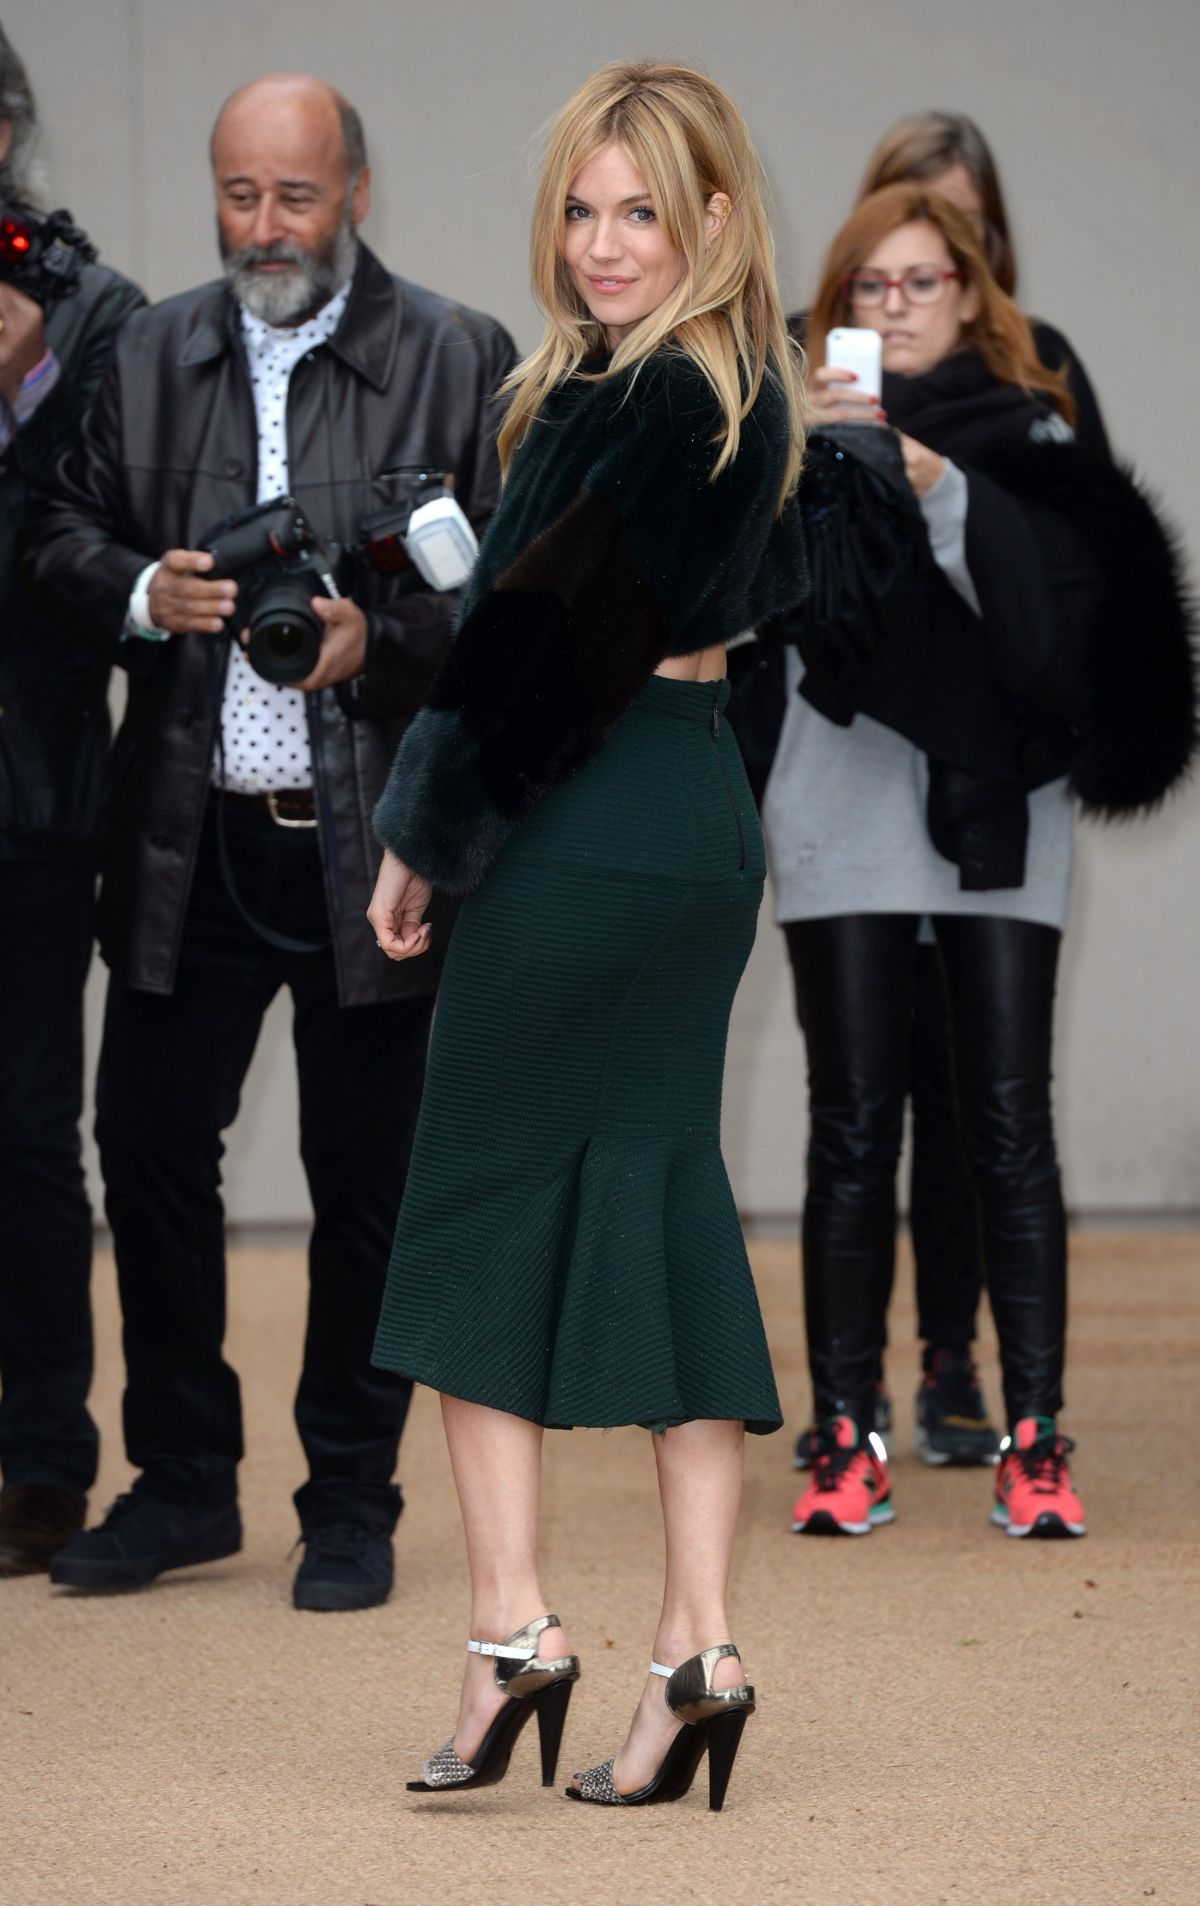 Sienna Miller At The Burberry Prorsum S/S 2014 Catwalk Show LFW In London